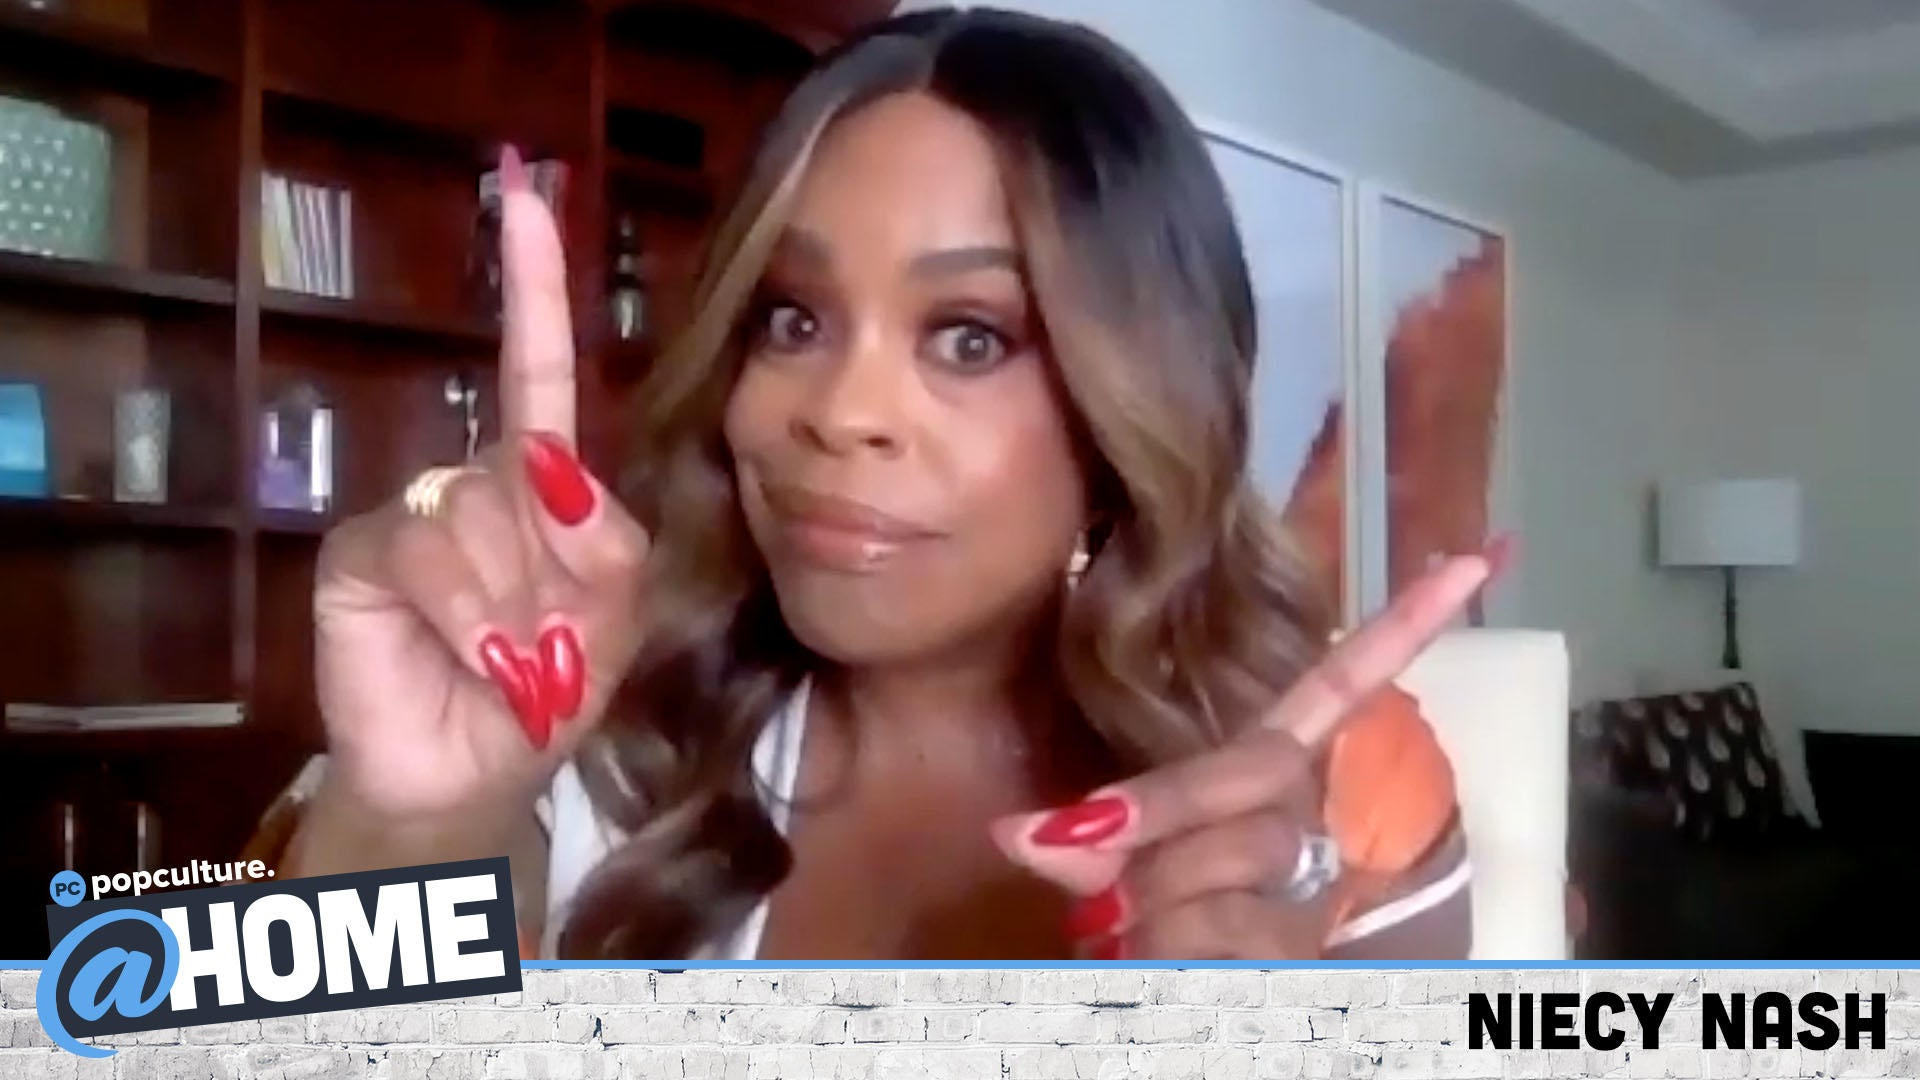 Niecy Nash - Exclusive Popculture@Home Interview